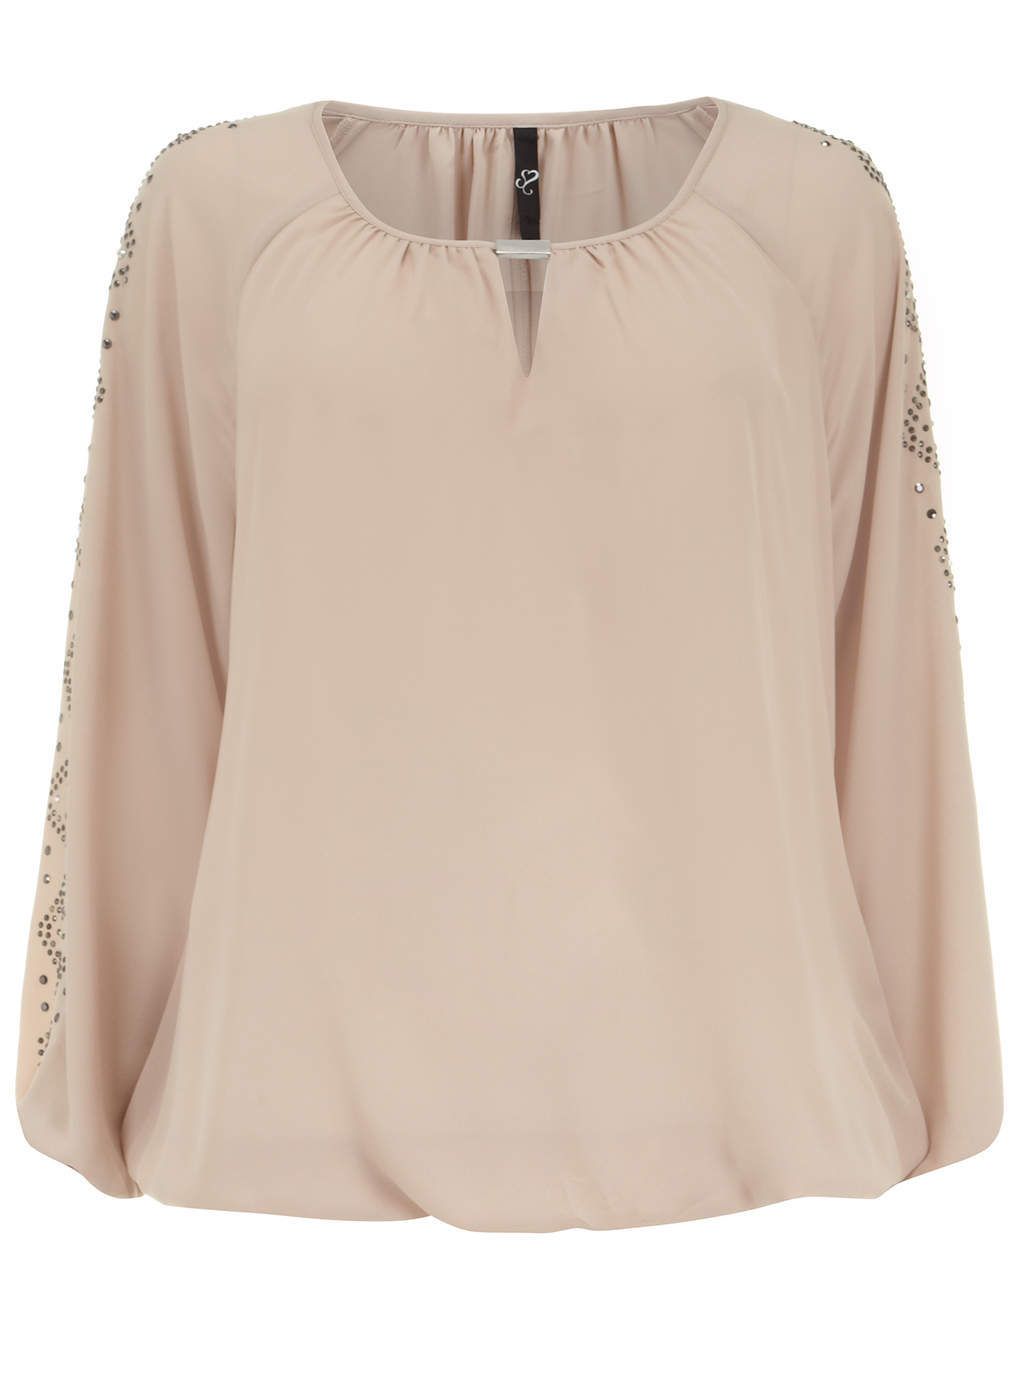 Nude Hot Fix Embellished Top - neckline: round neck; pattern: plain; style: blouse; predominant colour: nude; occasions: evening; length: standard; fibres: polyester/polyamide - 100%; fit: loose; sleeve length: long sleeve; sleeve style: standard; texture group: crepes; pattern type: fabric; embellishment: crystals/glass; season: s/s 2014